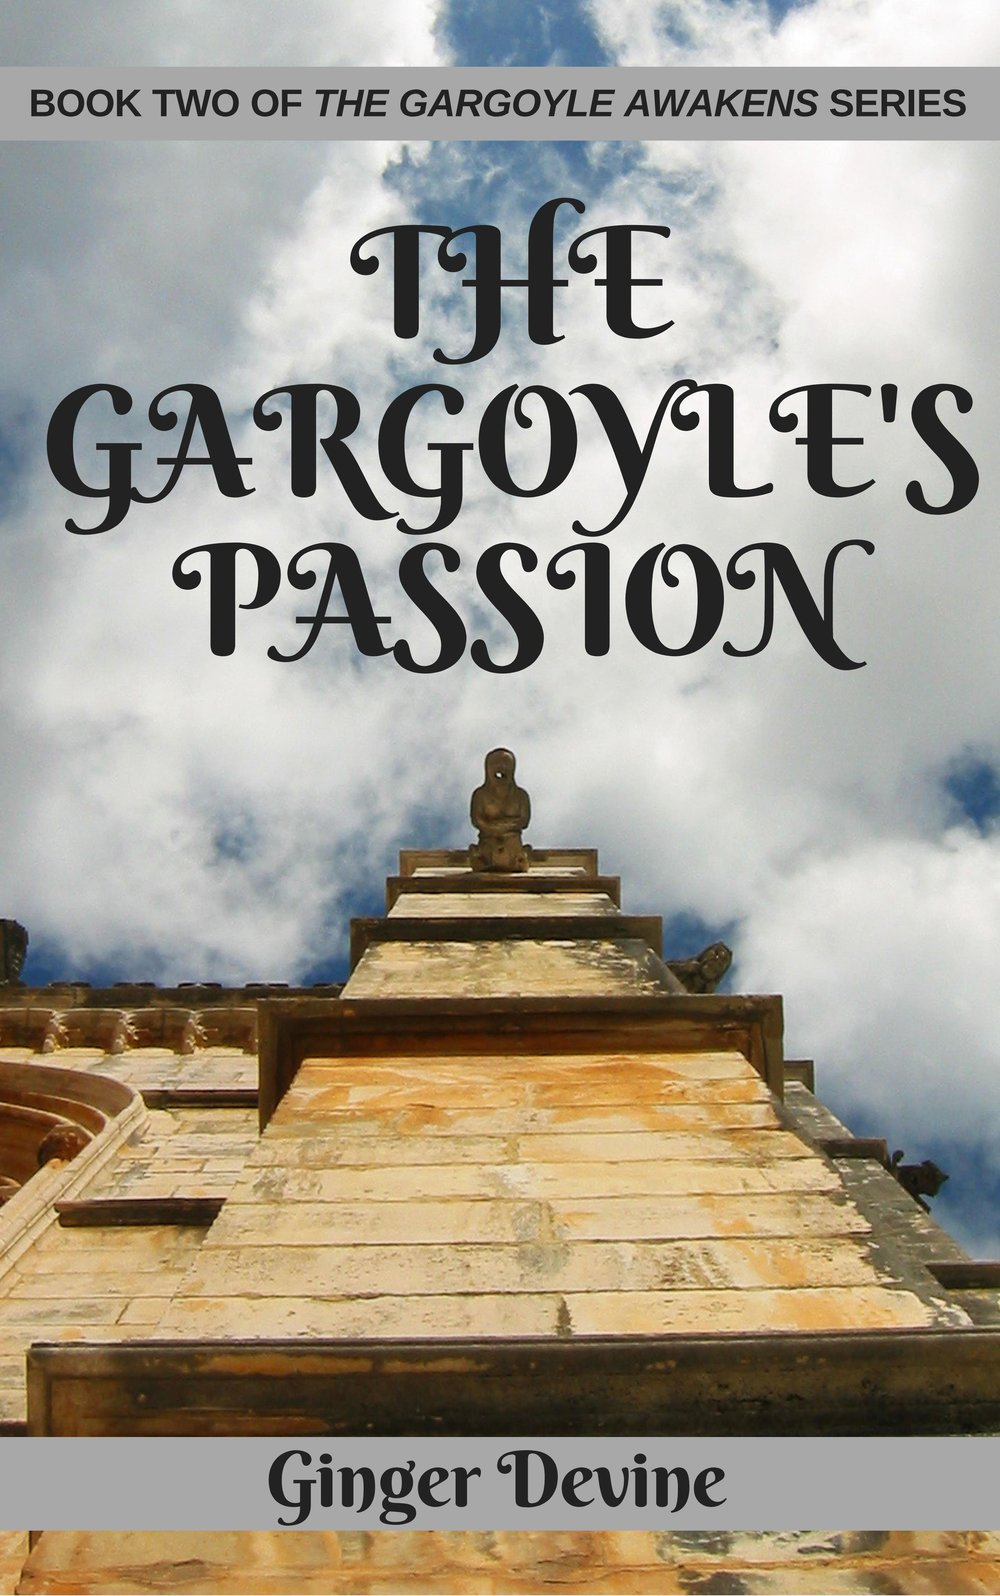 THE GARGOYLE'S PASSION v3_Page_1.jpeg